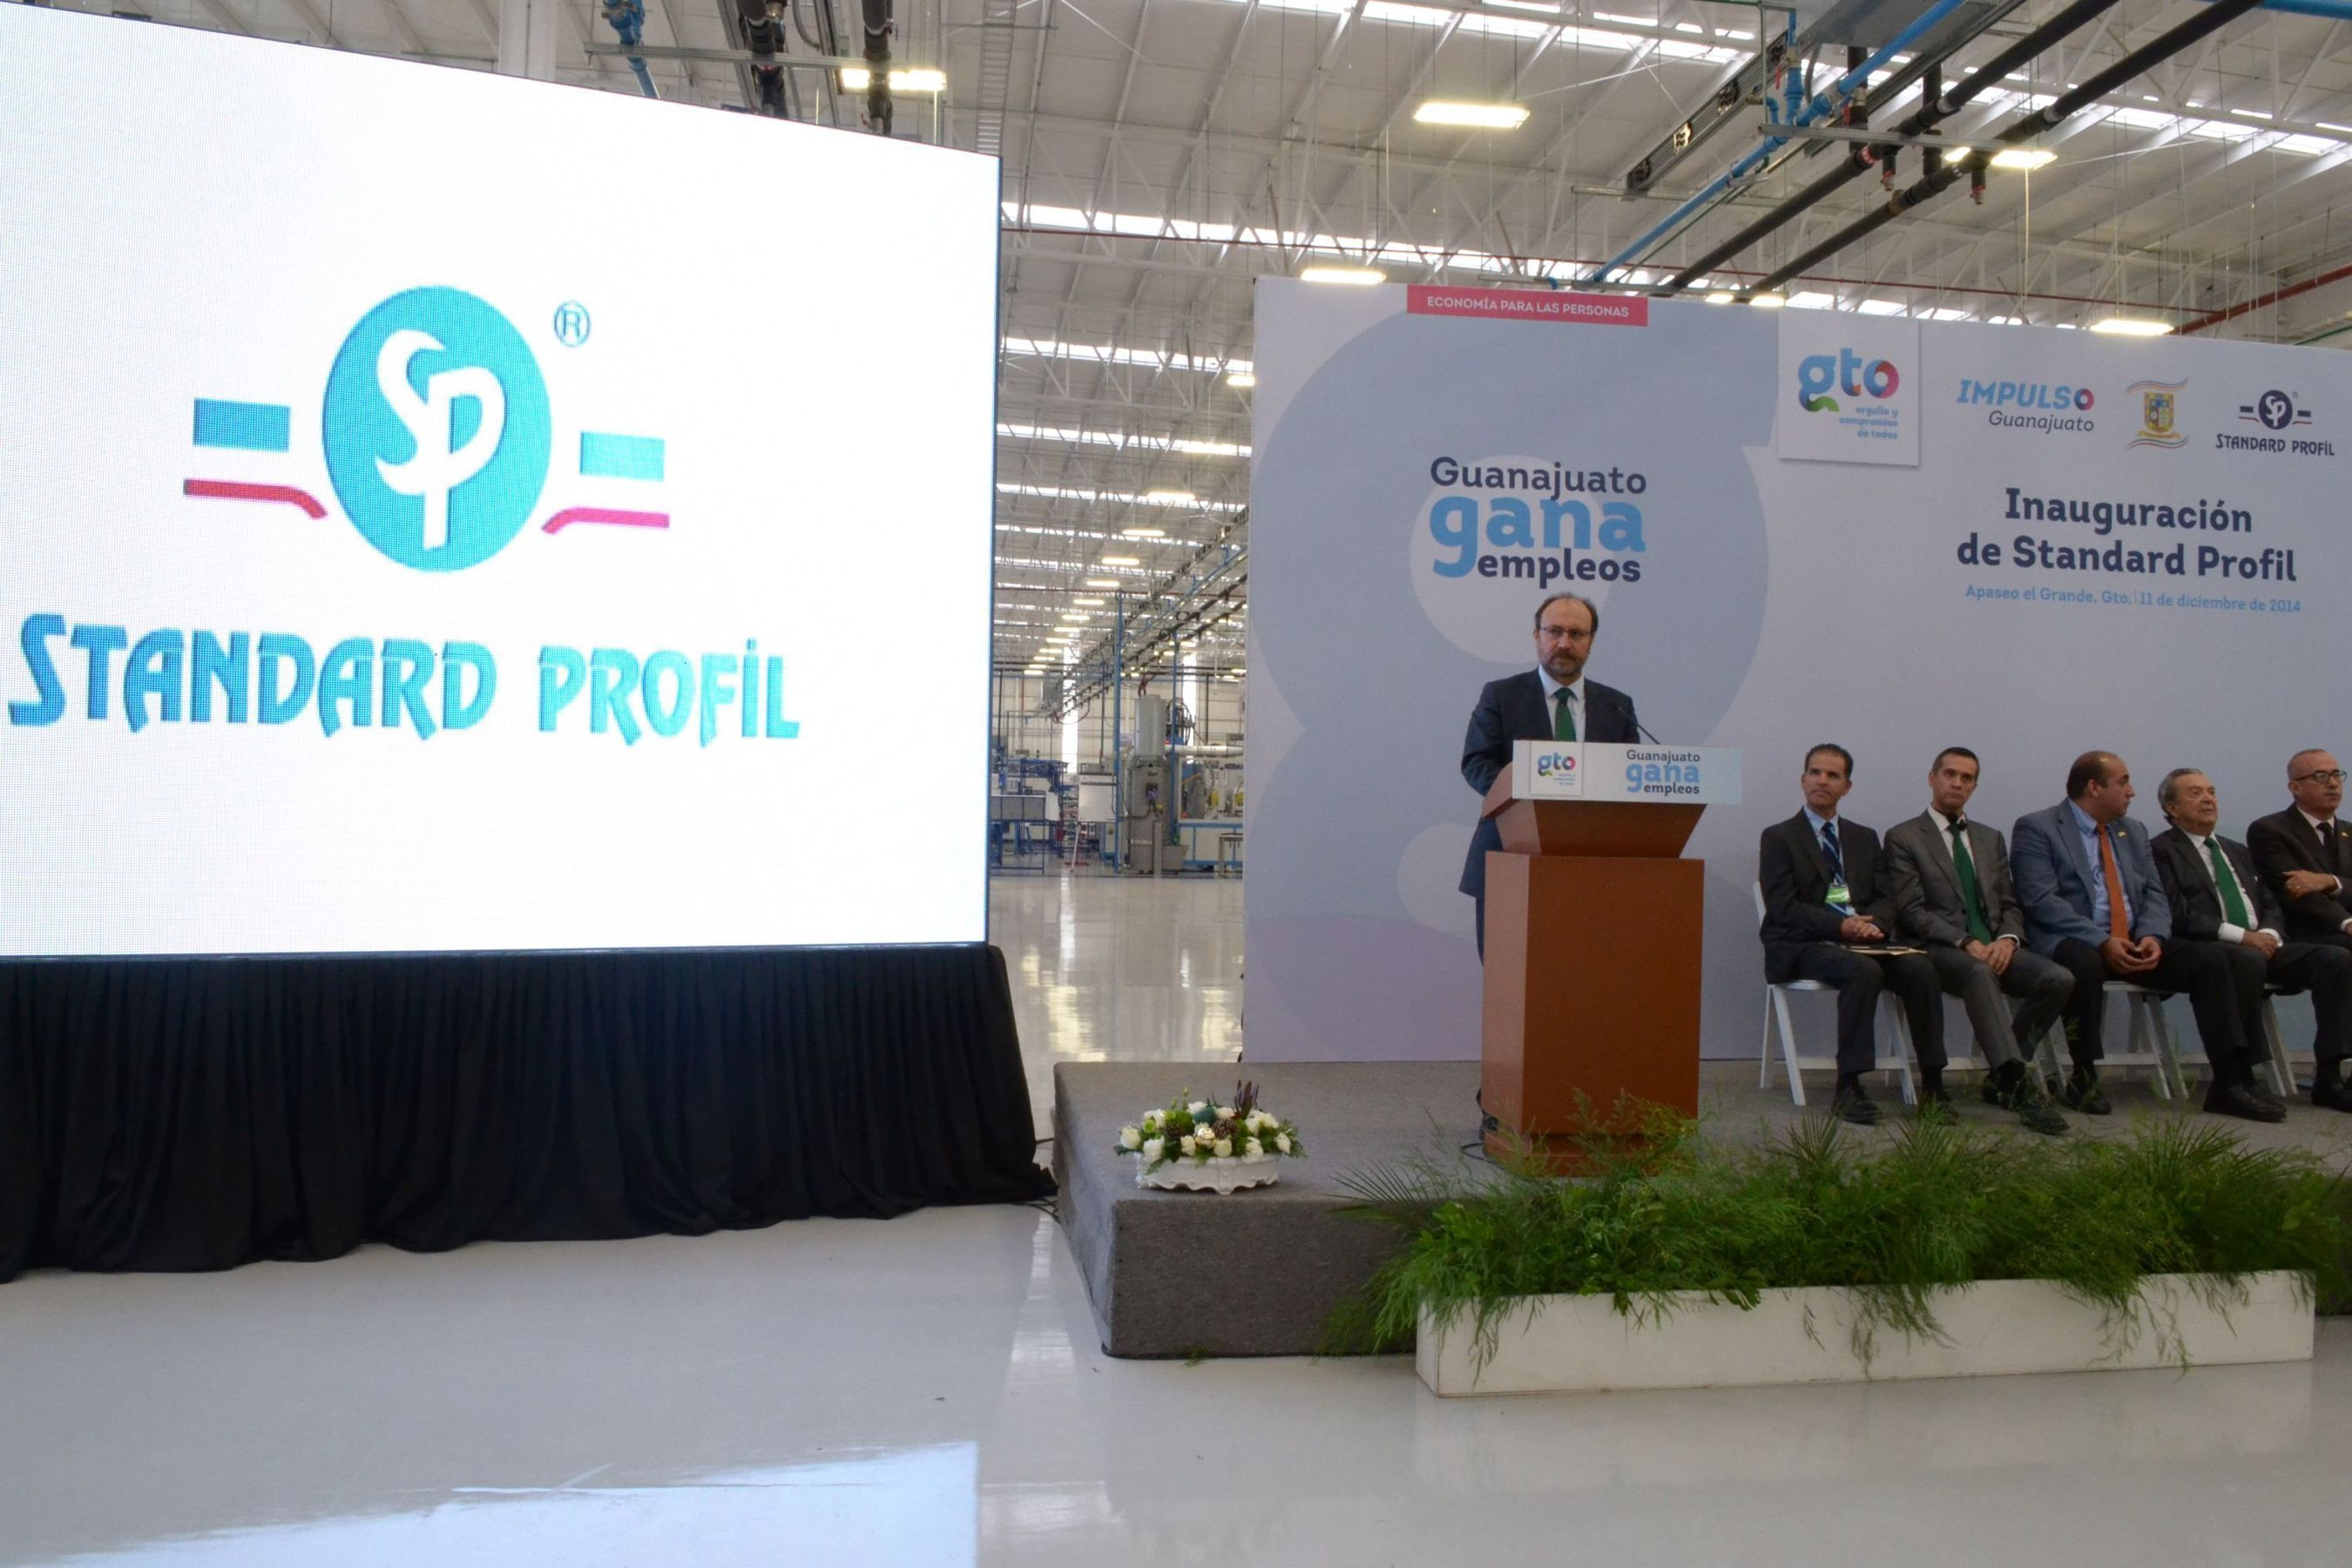 Turhan Semizer, CEO, during on his speech at the opening ceremony of Mexico Plant of Standard Profil. (PRNewsFoto/Standard Profil)